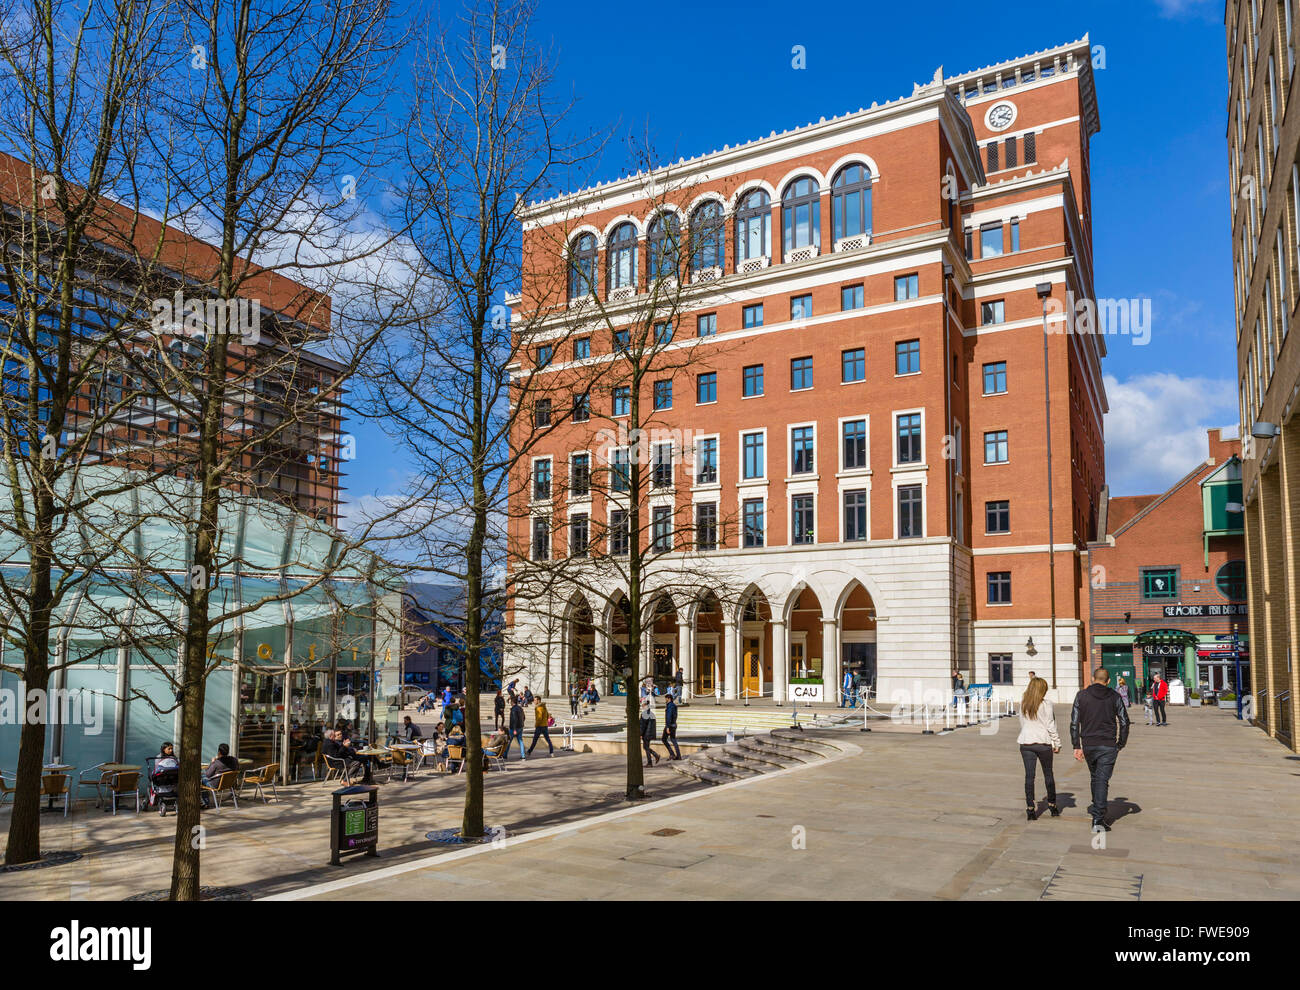 Central Square in the Brindley Place development in the city centre, Birmingham, West Midlands, England, UK - Stock Image